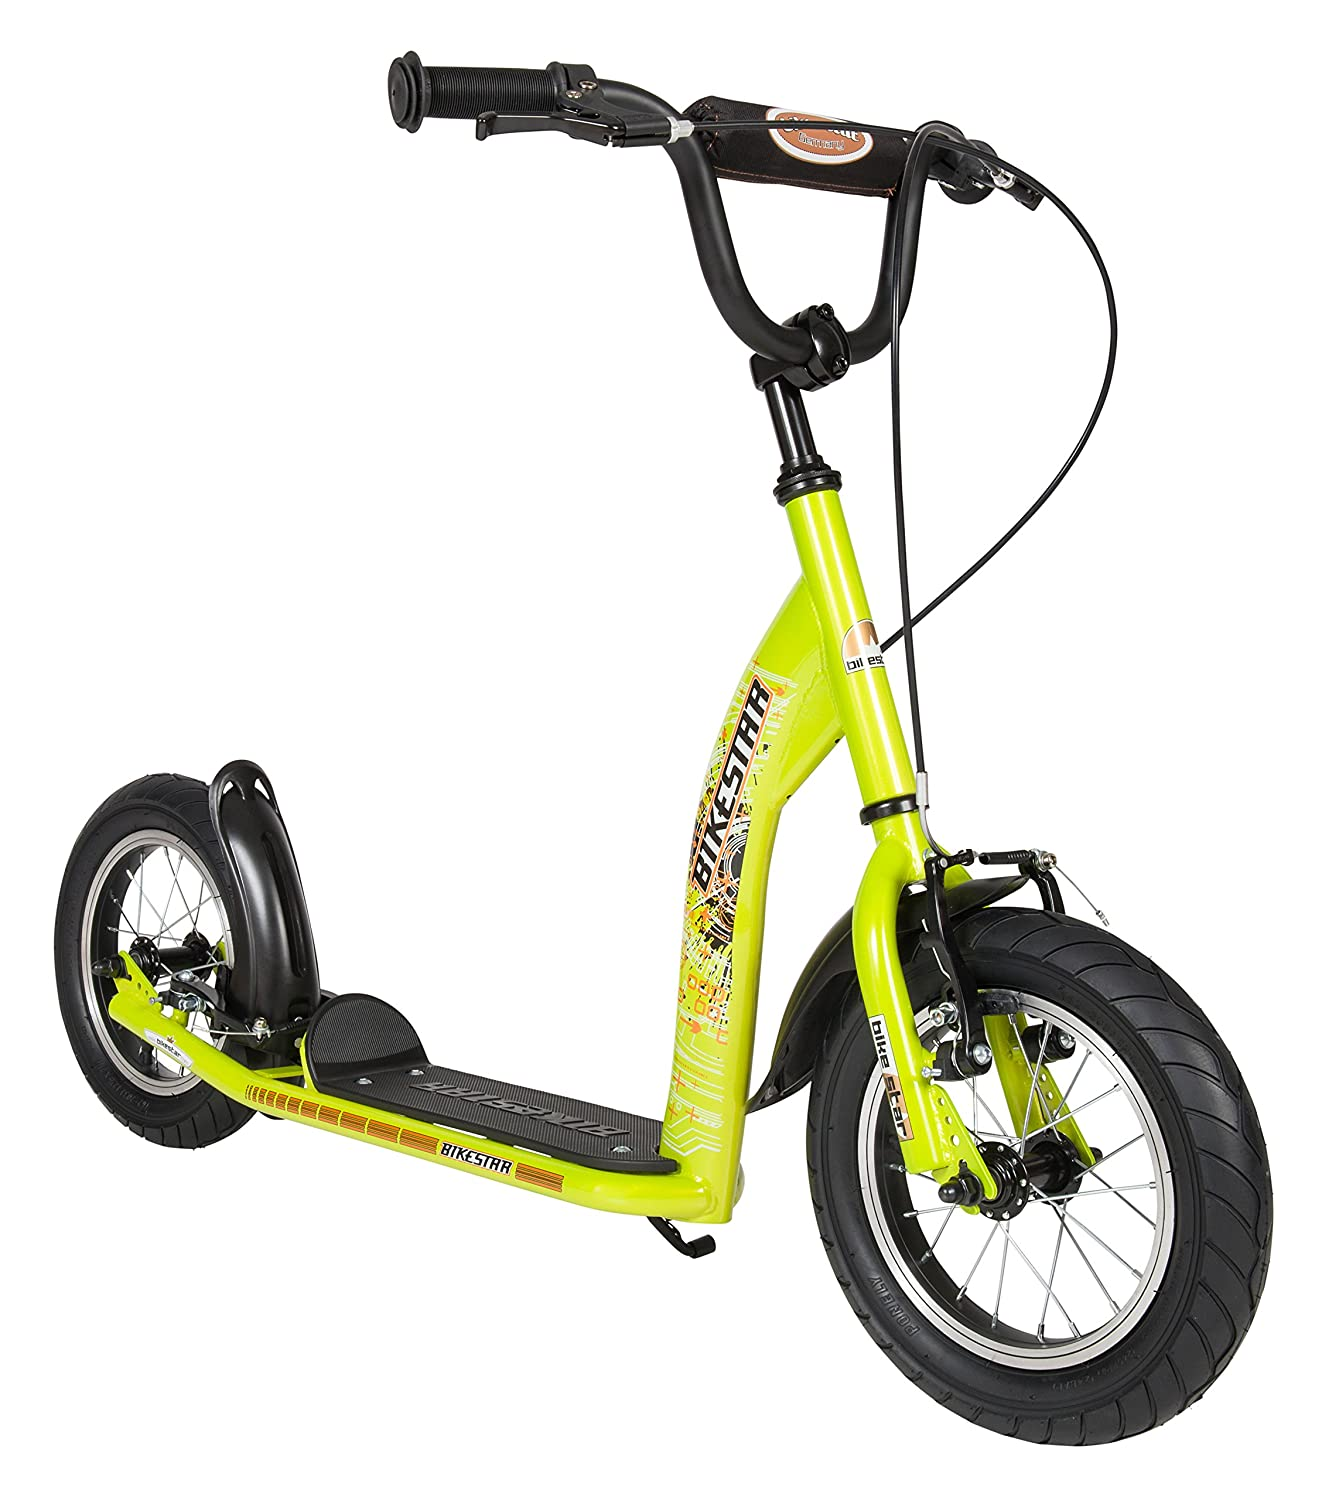 BIKESTAR� Original Safety Pro Sport Push Kick Scooter Kids with brakes, mudguard and air tires for age 7 year old children